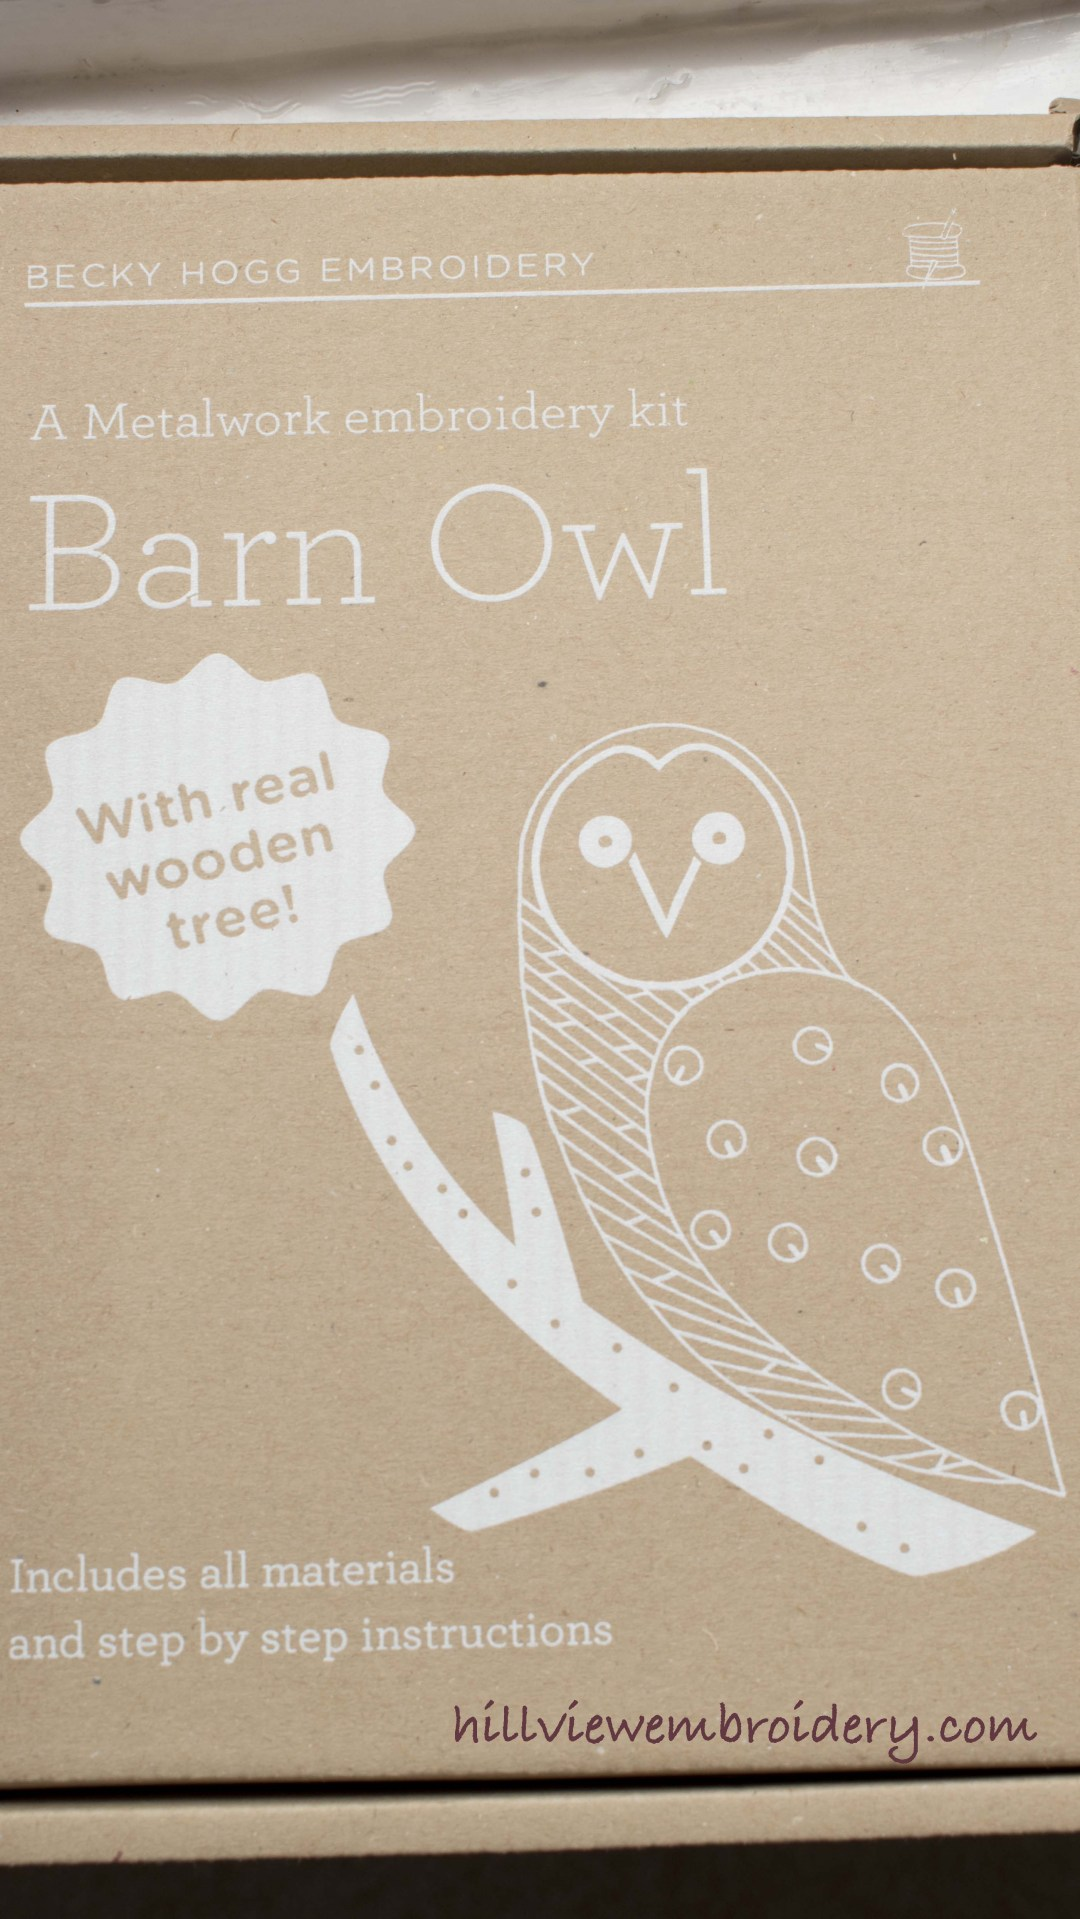 The beautifully packaged owl metallic work kit by Becky Hogg